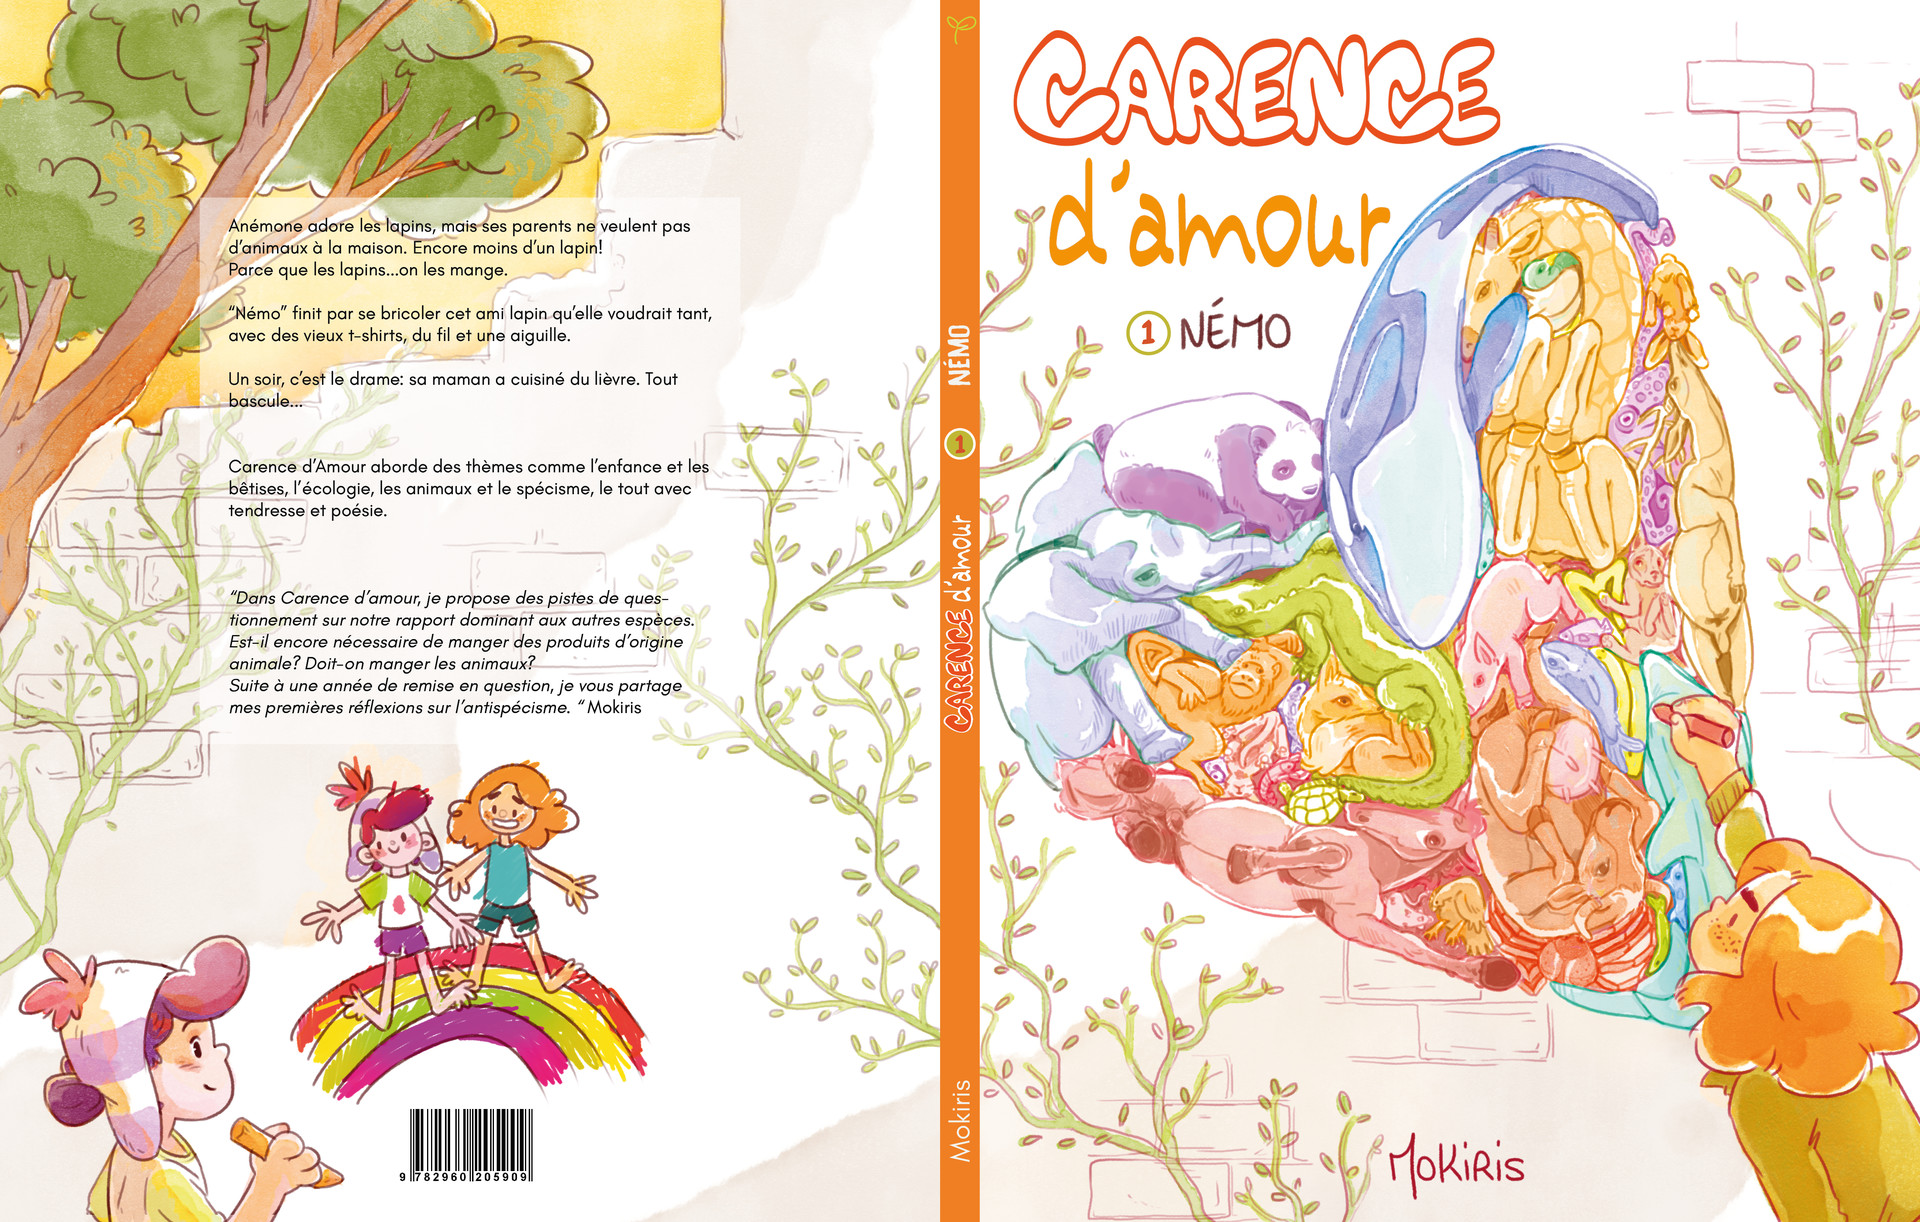 Clemence gregoire cdacouverture